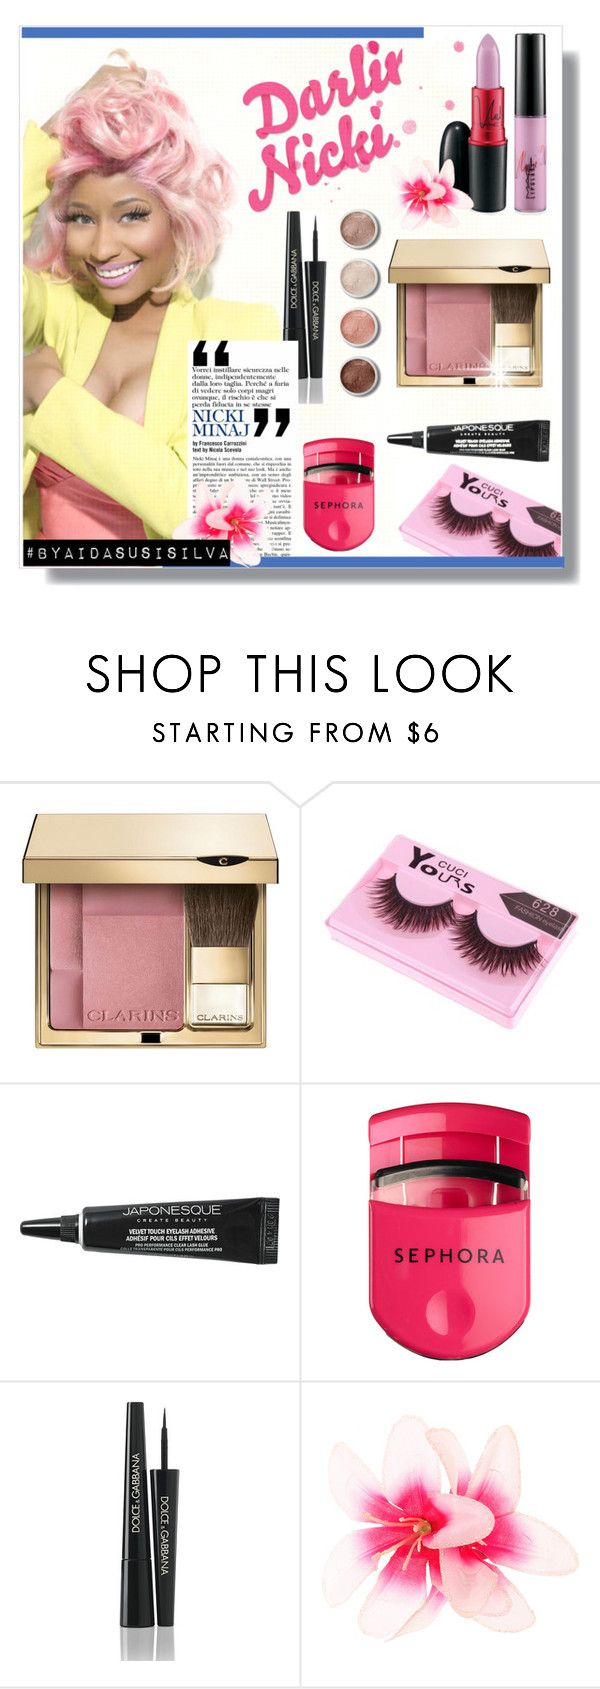 """Nicki Makeup"" by aidasusisilva ❤ liked on Polyvore featuring beauty, Nicki Minaj, Clarins, Terre Mère, Japonesque, Sephora Collection and Dolce&Gabbana"